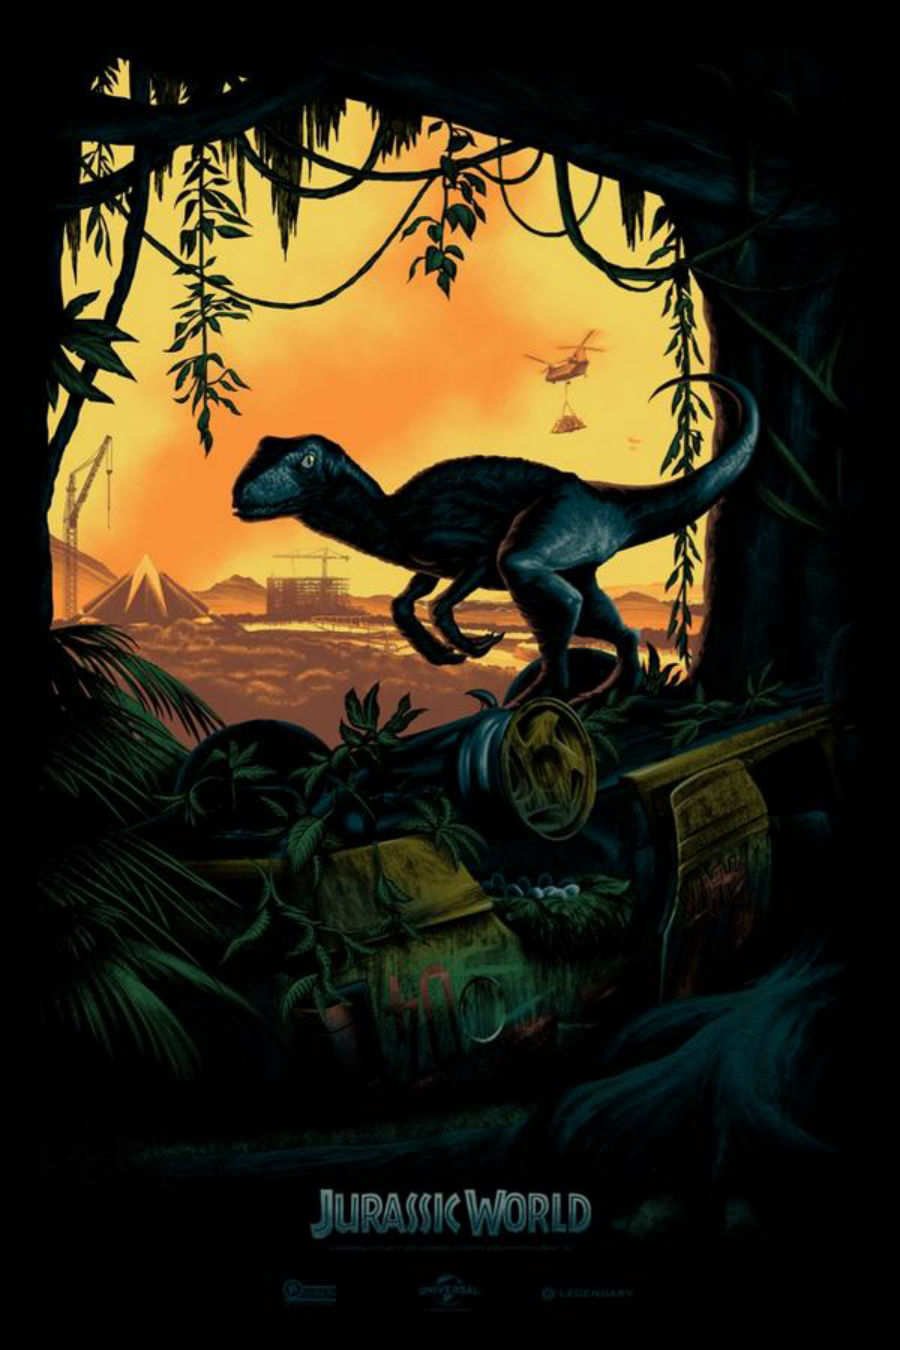 New Jurassic World Art Released